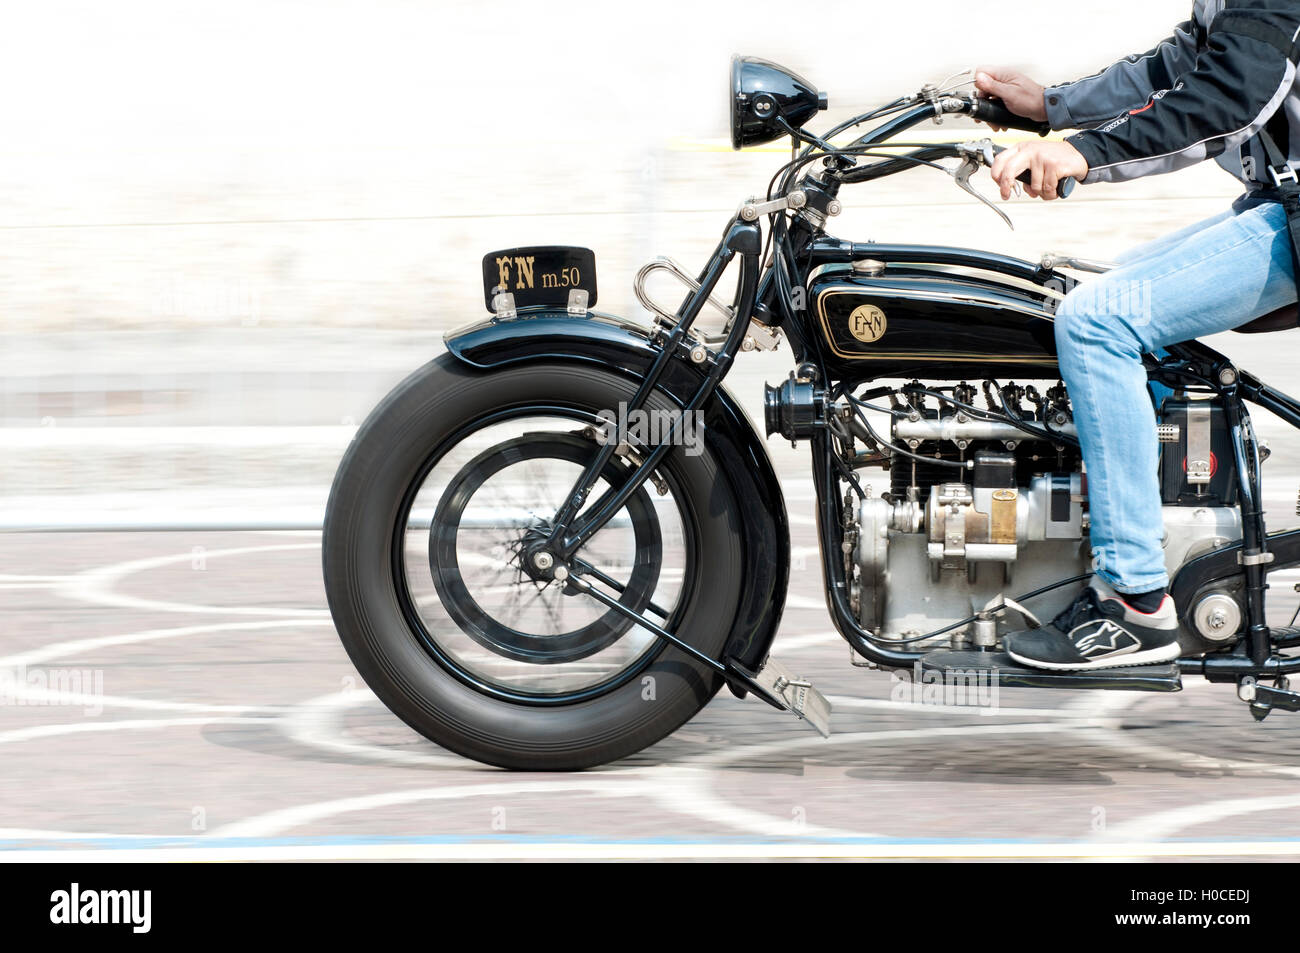 Italy, Lombardy, Meeting of Vintage Motorcycle, Vintage FN Model 50 by 1925  Motorcycle - Stock Image